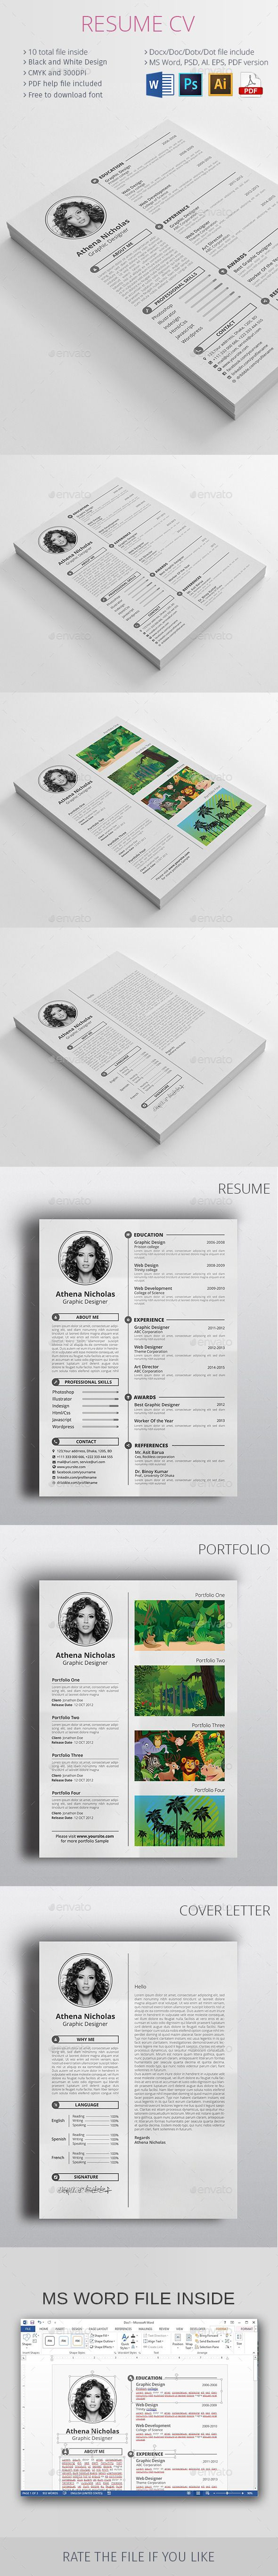 246 best Resume images on Pinterest | Resume templates, Page layout ...